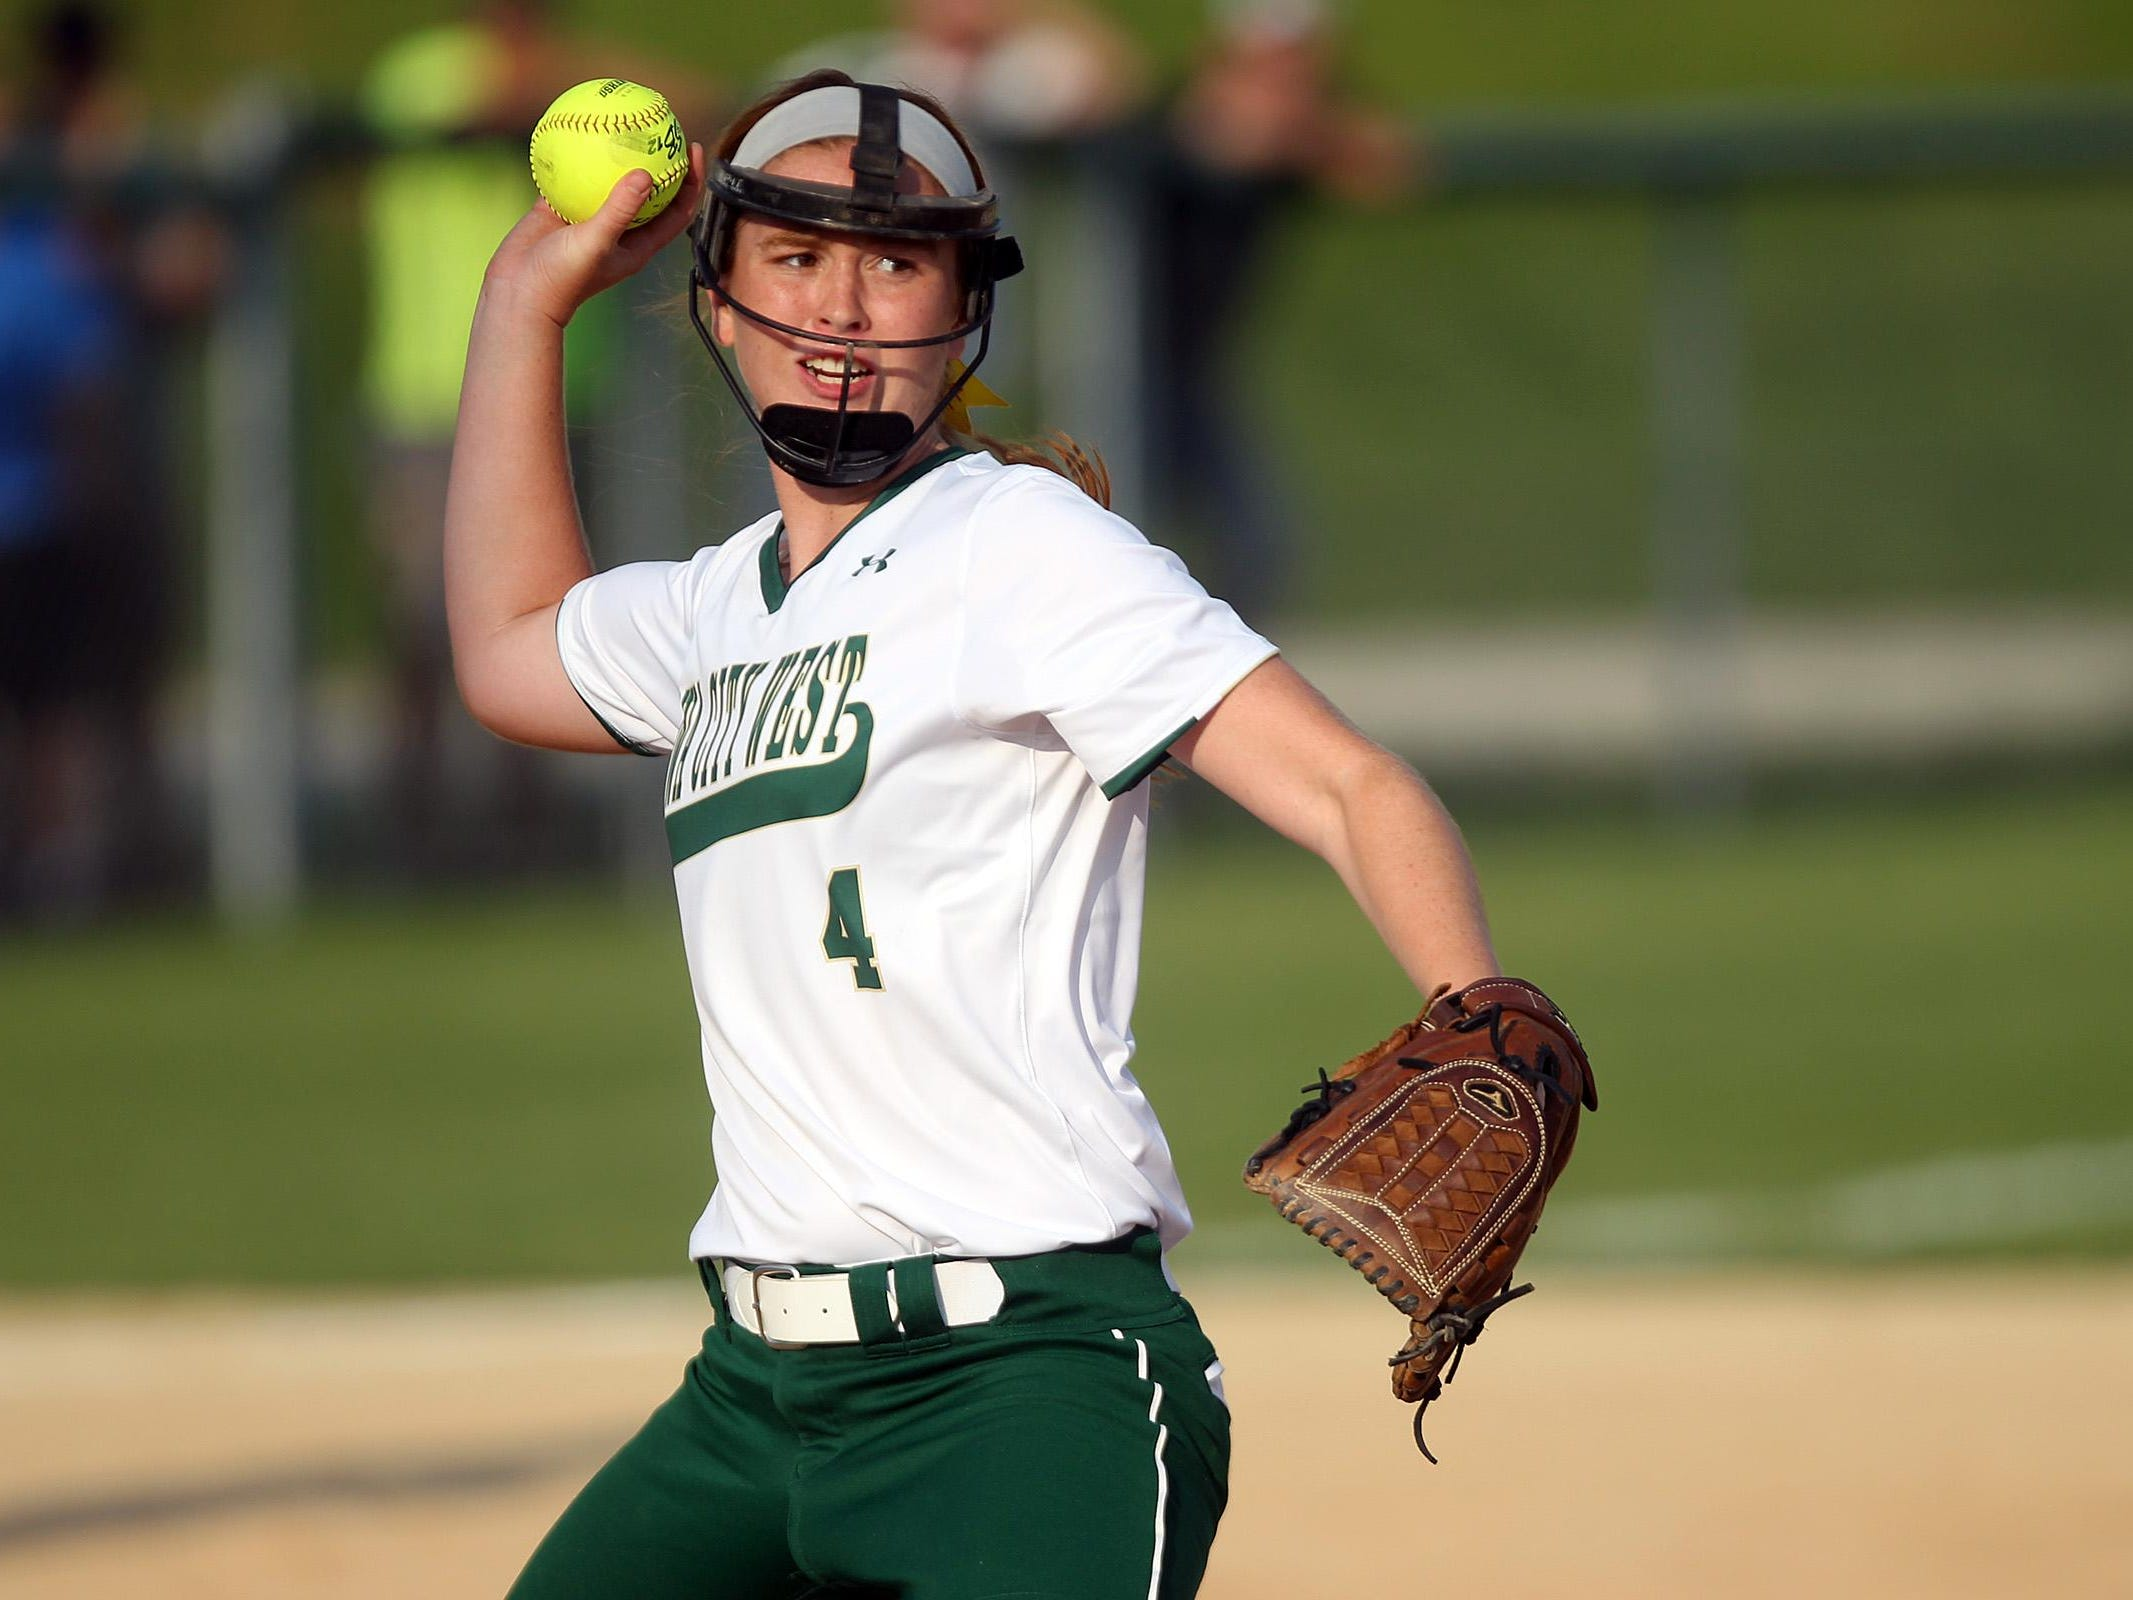 West High's Jessie Harder throws to first base during the Women of Troy's game against Linn-Mar on Thursday, July 9, 2015. David Scrivner / Iowa City Press-Citizen